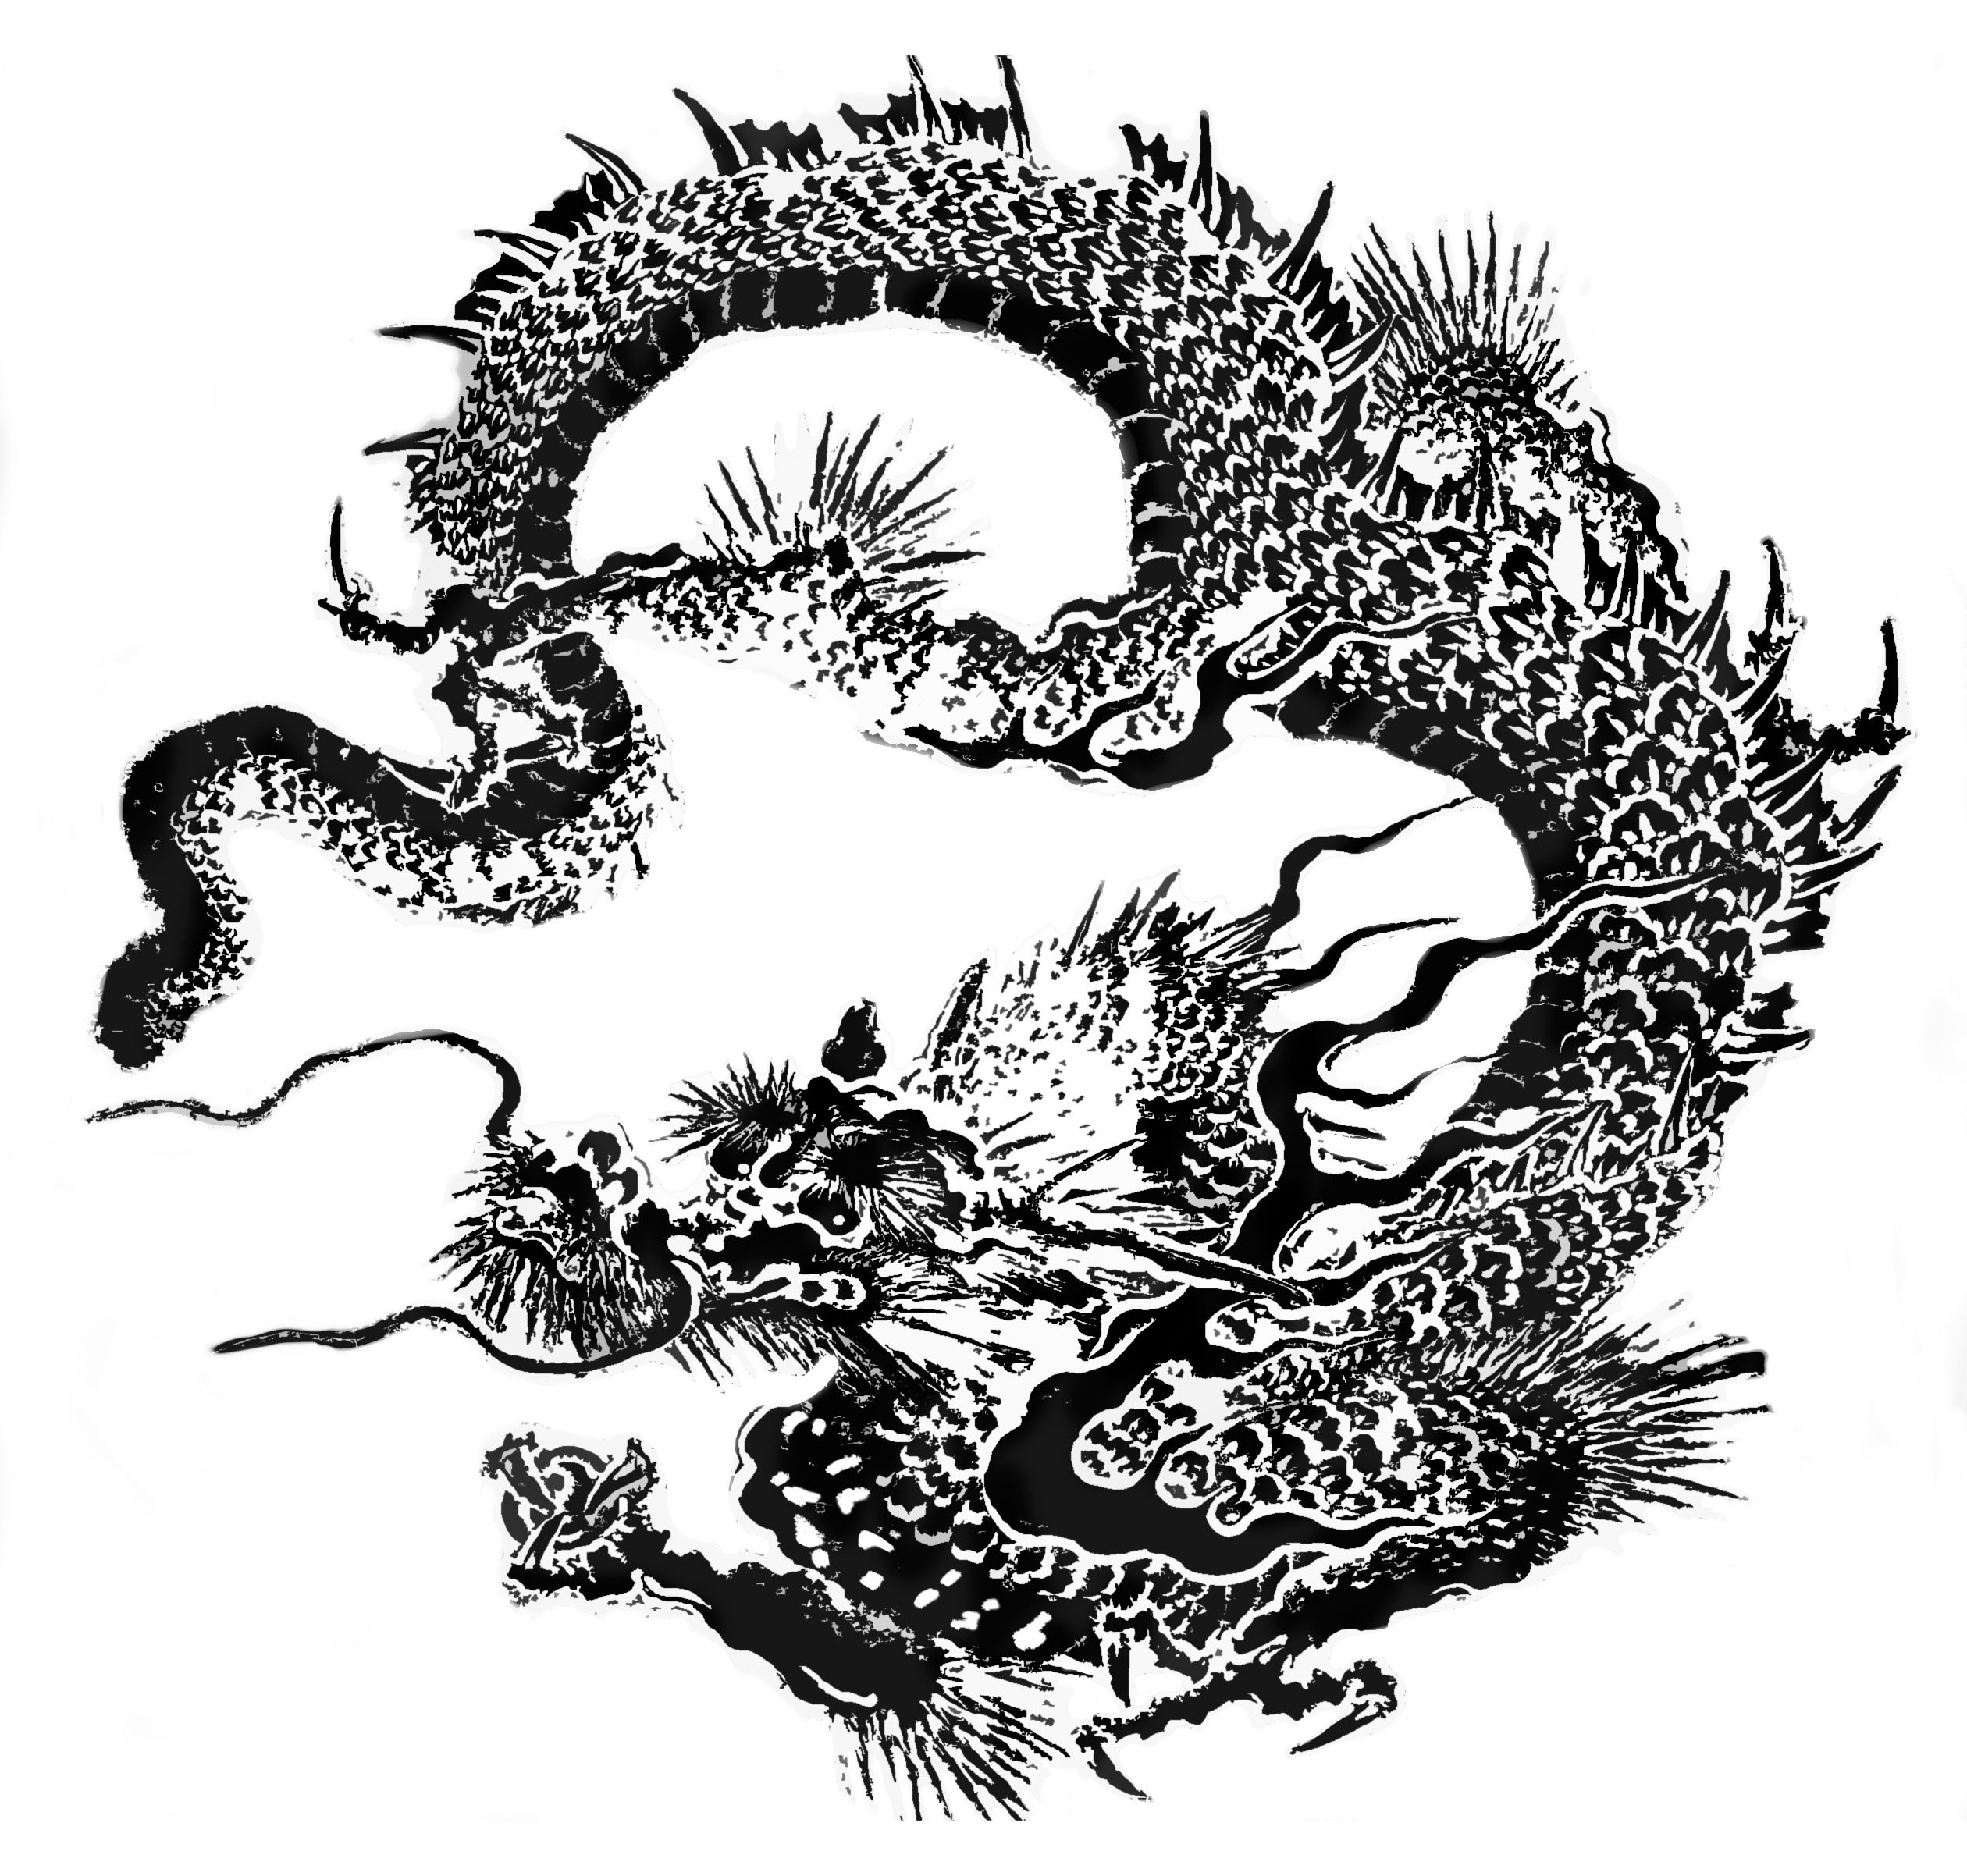 Traditional Japanese Dragon Art Japanese Dragon Dragon Art Traditional Japanese Dragon